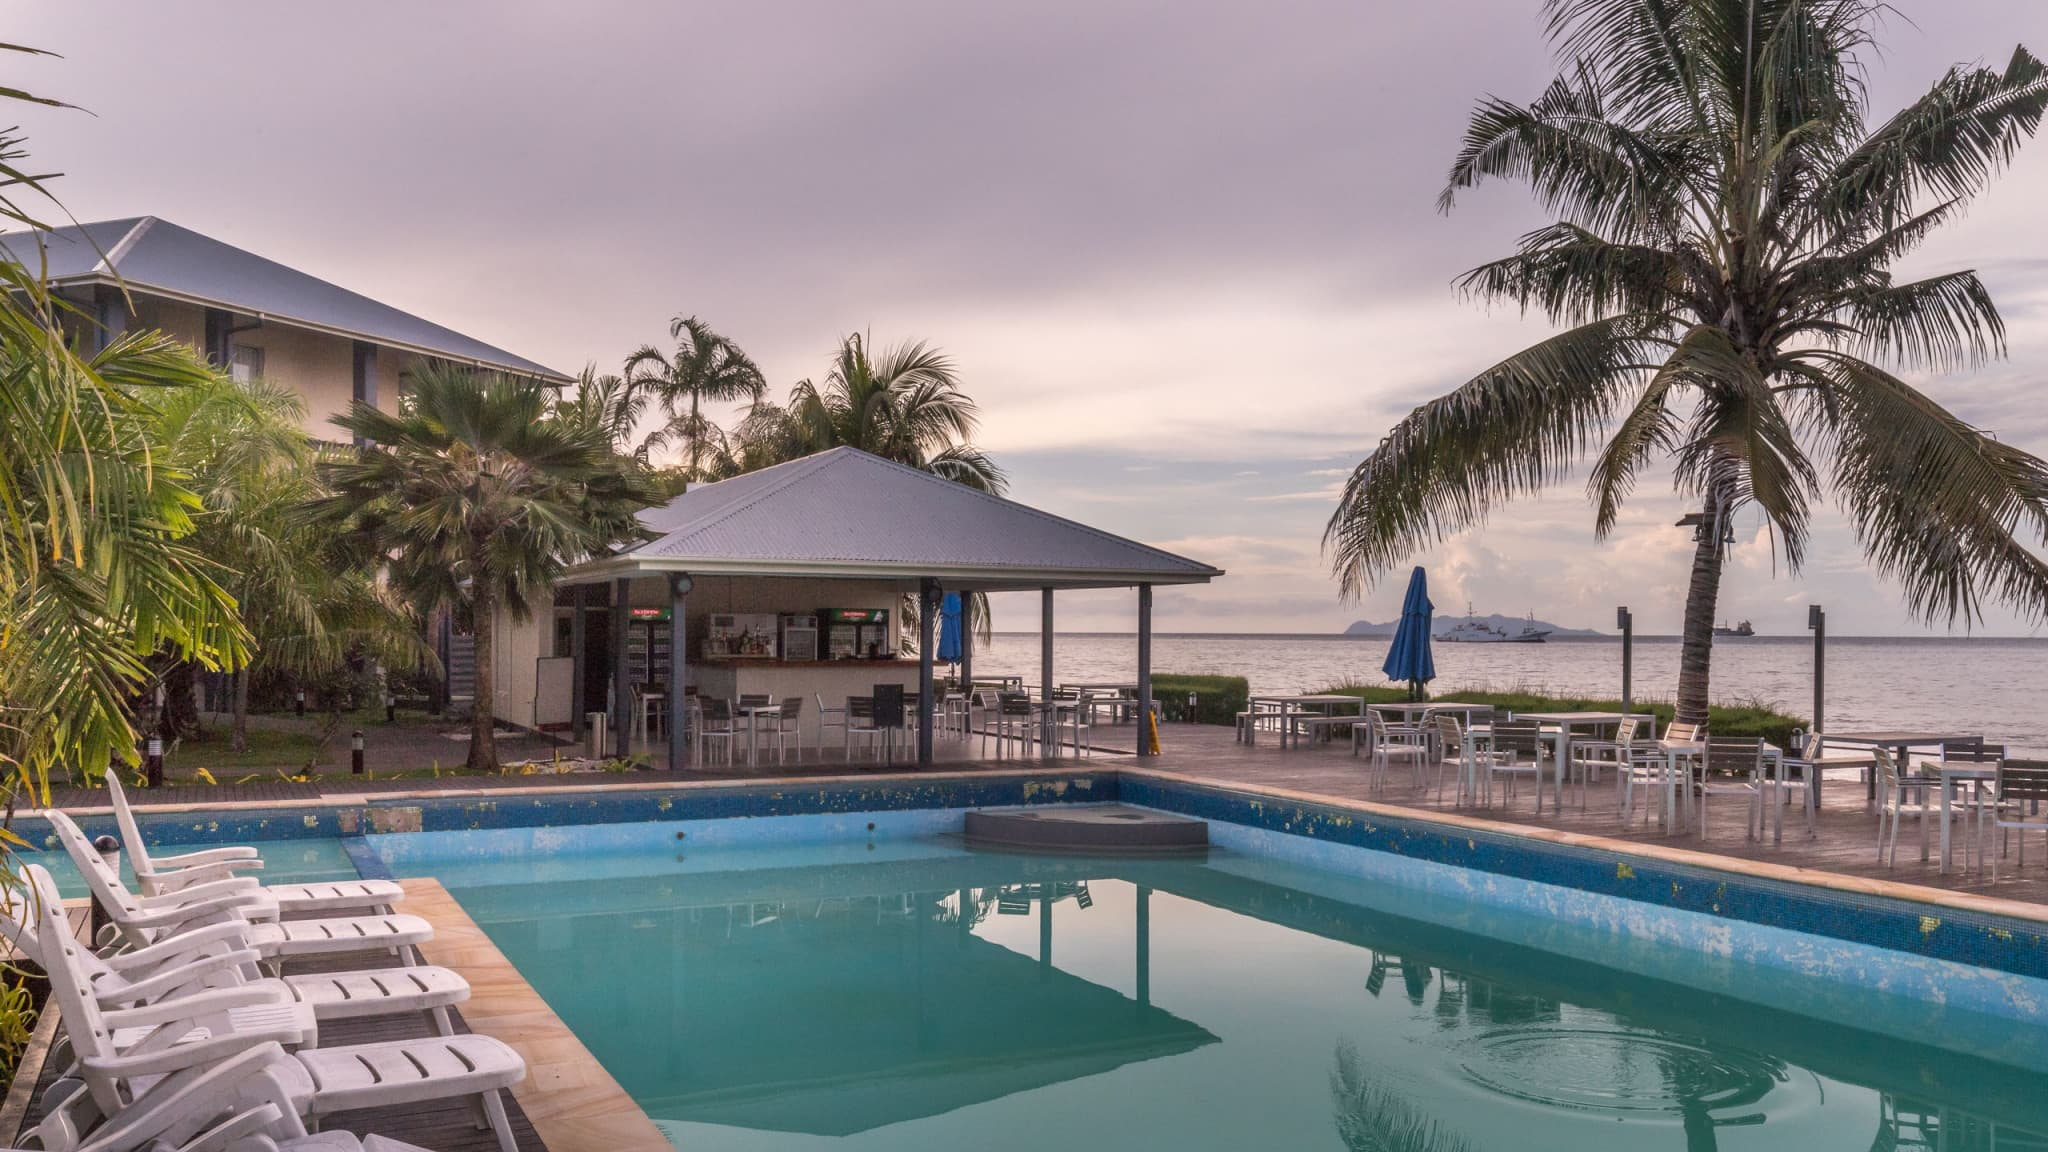 Swiimming Pool - SOLOMON ISLANDS - Heritage Park Hotel review: the luxury place to stay in Honiara